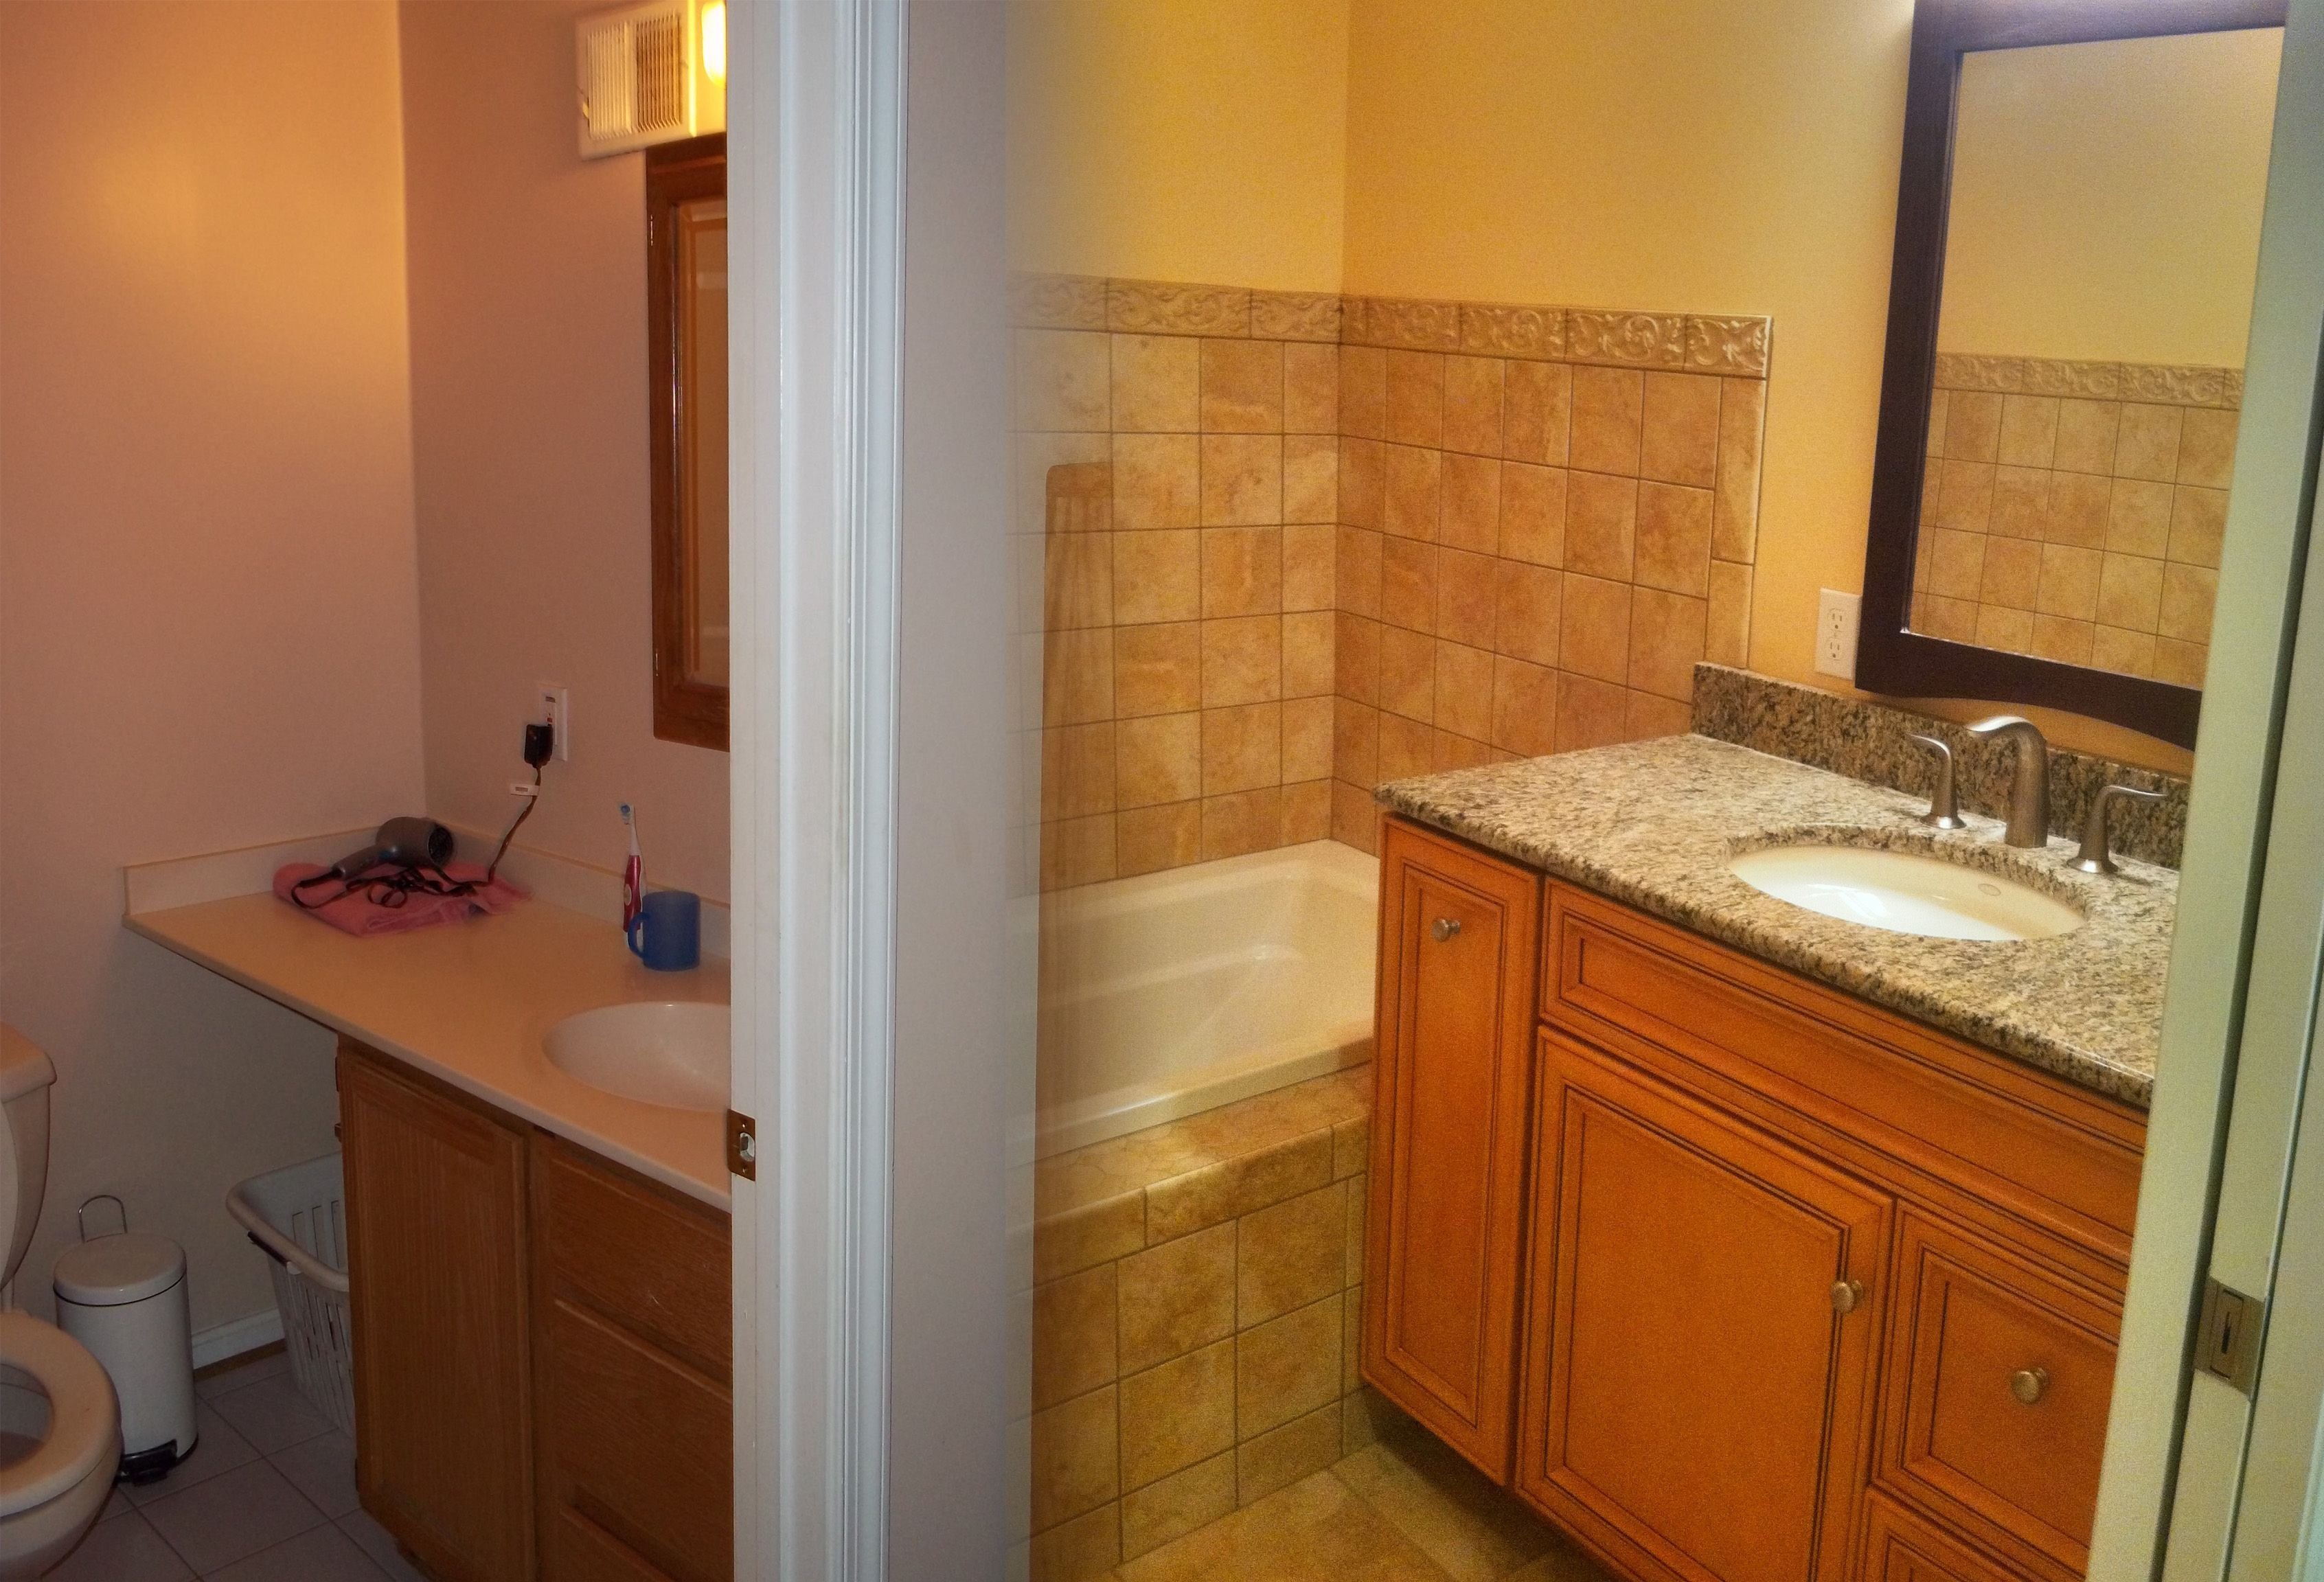 1960s bathroom renovation before and after for 1960s bathroom design